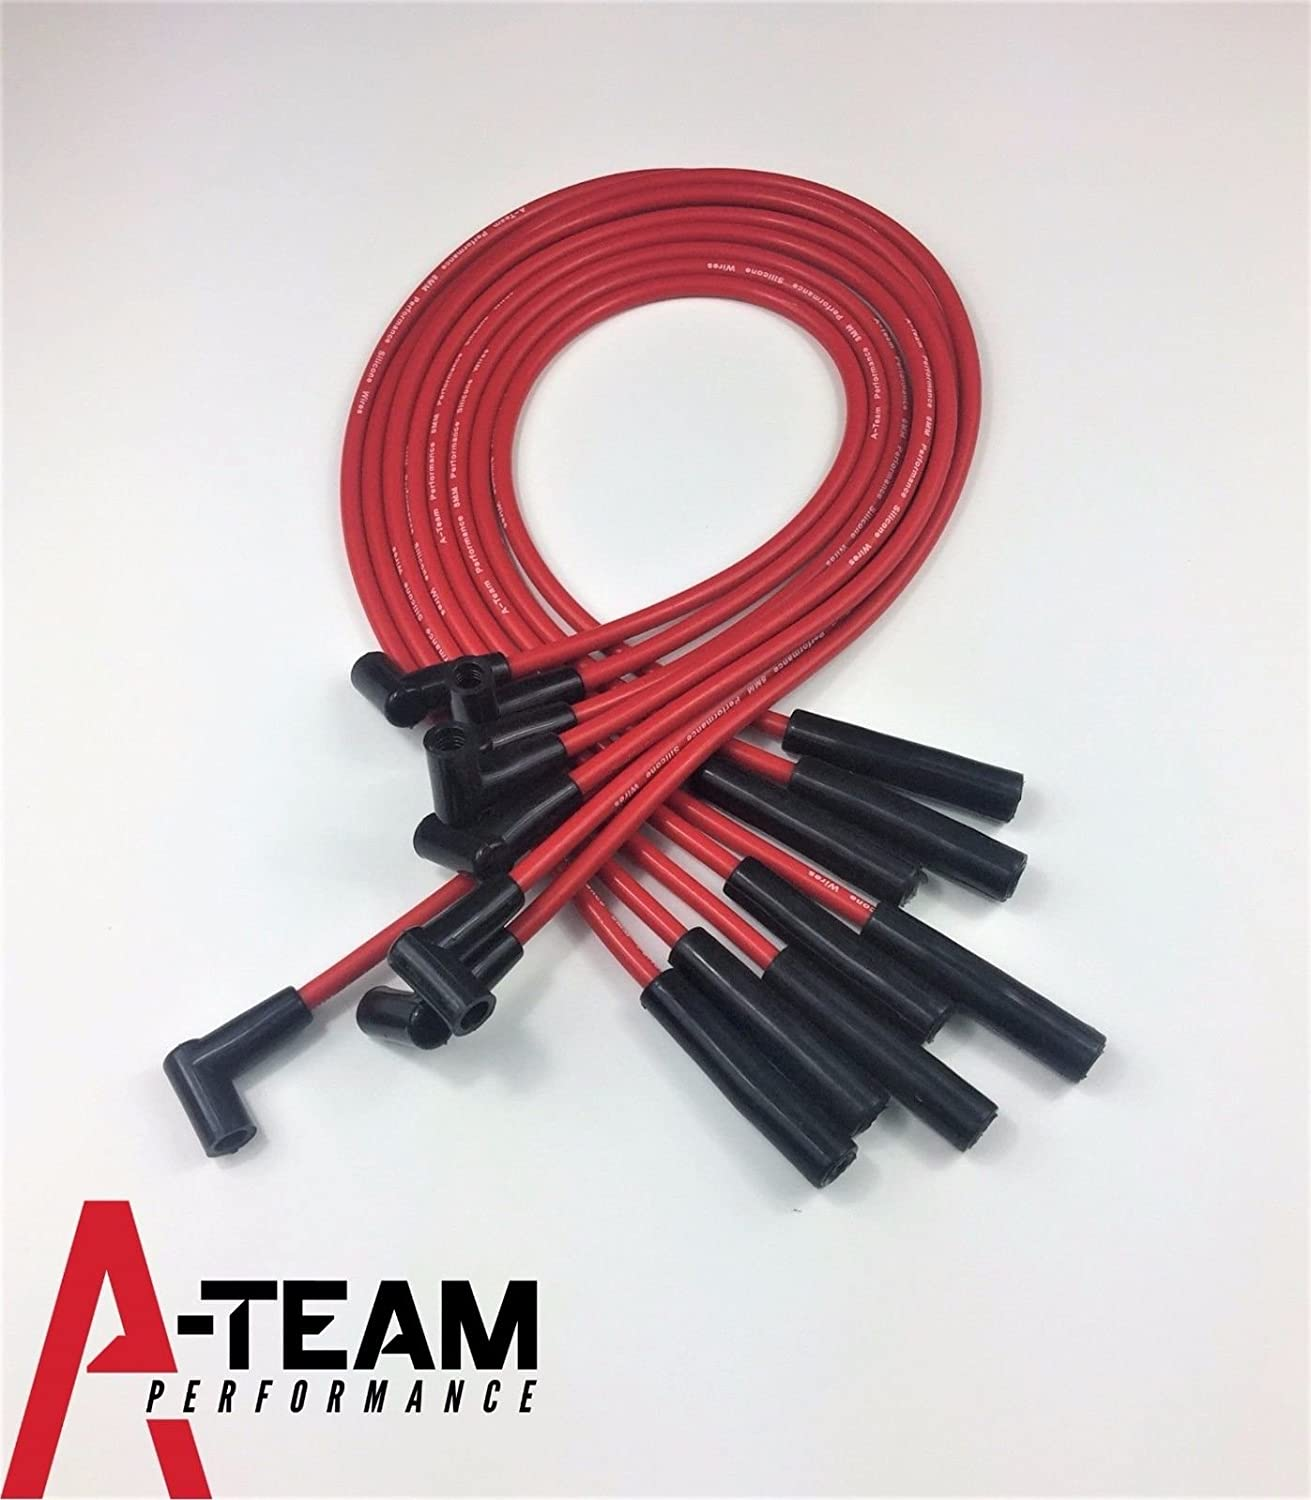 Amazon.com: A-Team Performance SBC 350 SMALL CAP DISTRIBUTOR COIL + RED 8mm  SPARK PLUG WIRES UNDER THE EXHAUST: Automotive